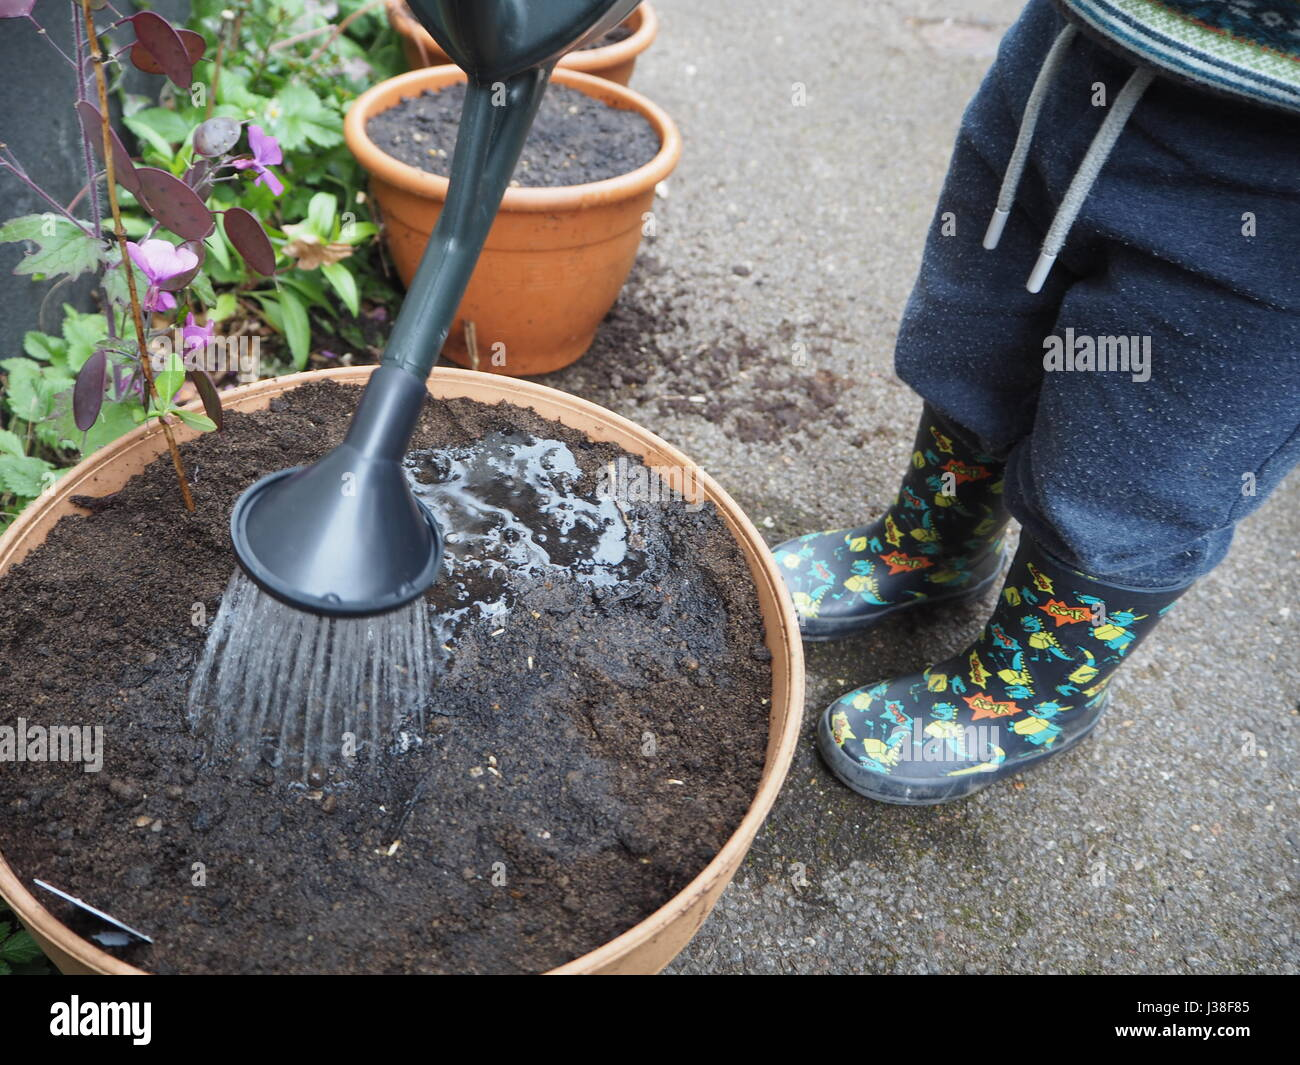 Two year old helps with planting seeds. One of a series of toddler in garden Stock Photo